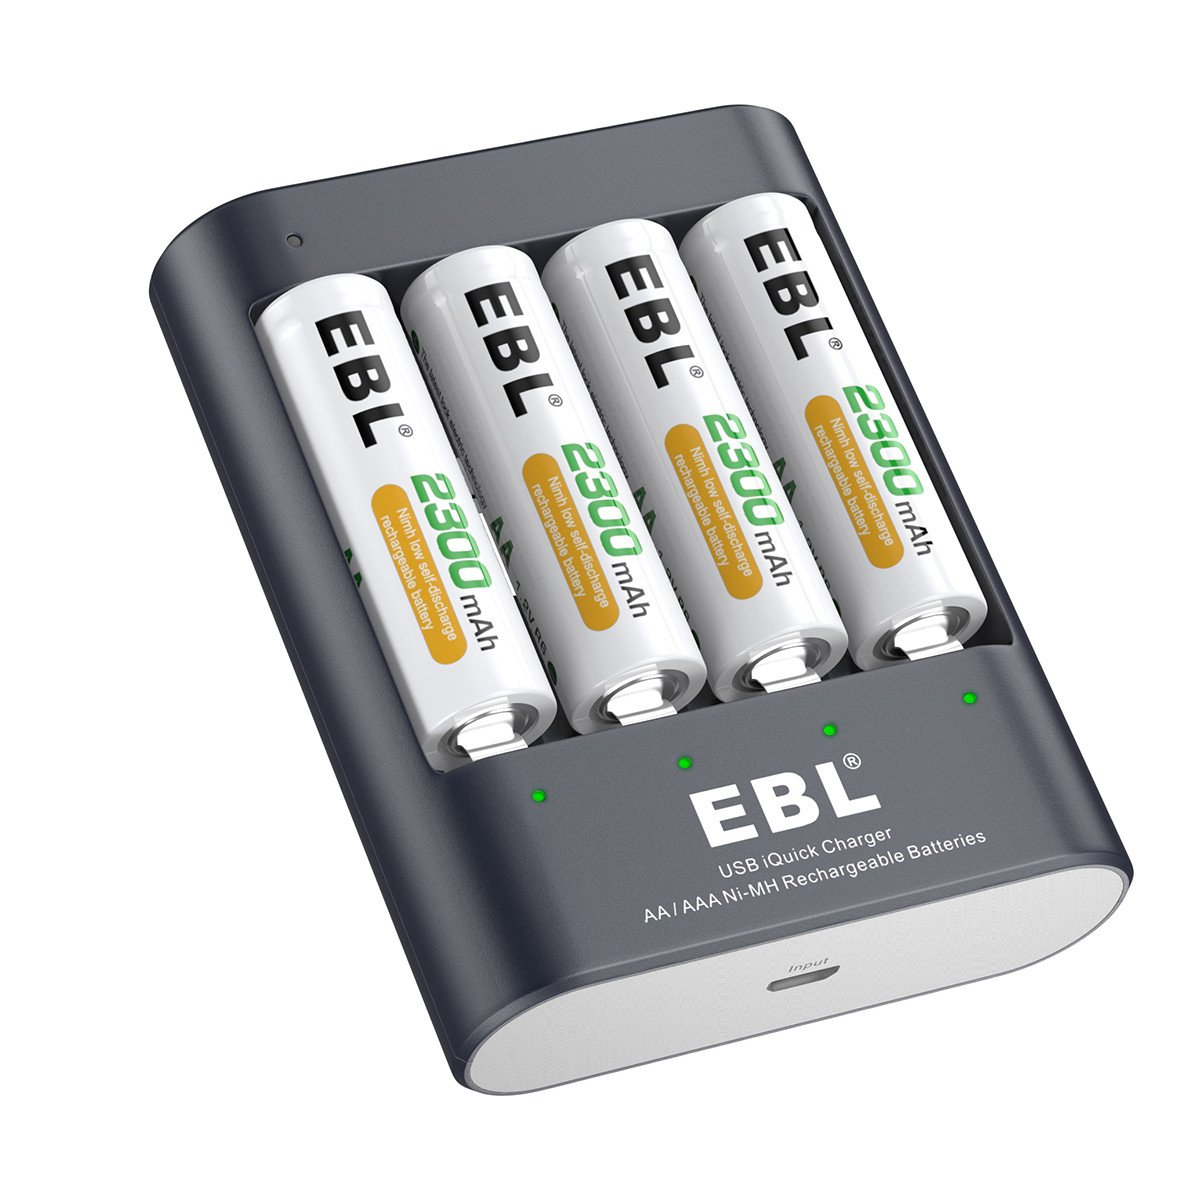 EBL 40Min iQuick Smart Battery Charger With USB Port and AA 2300mAh Rechargeable Batteries 4 Counts by EBL (Image #1)